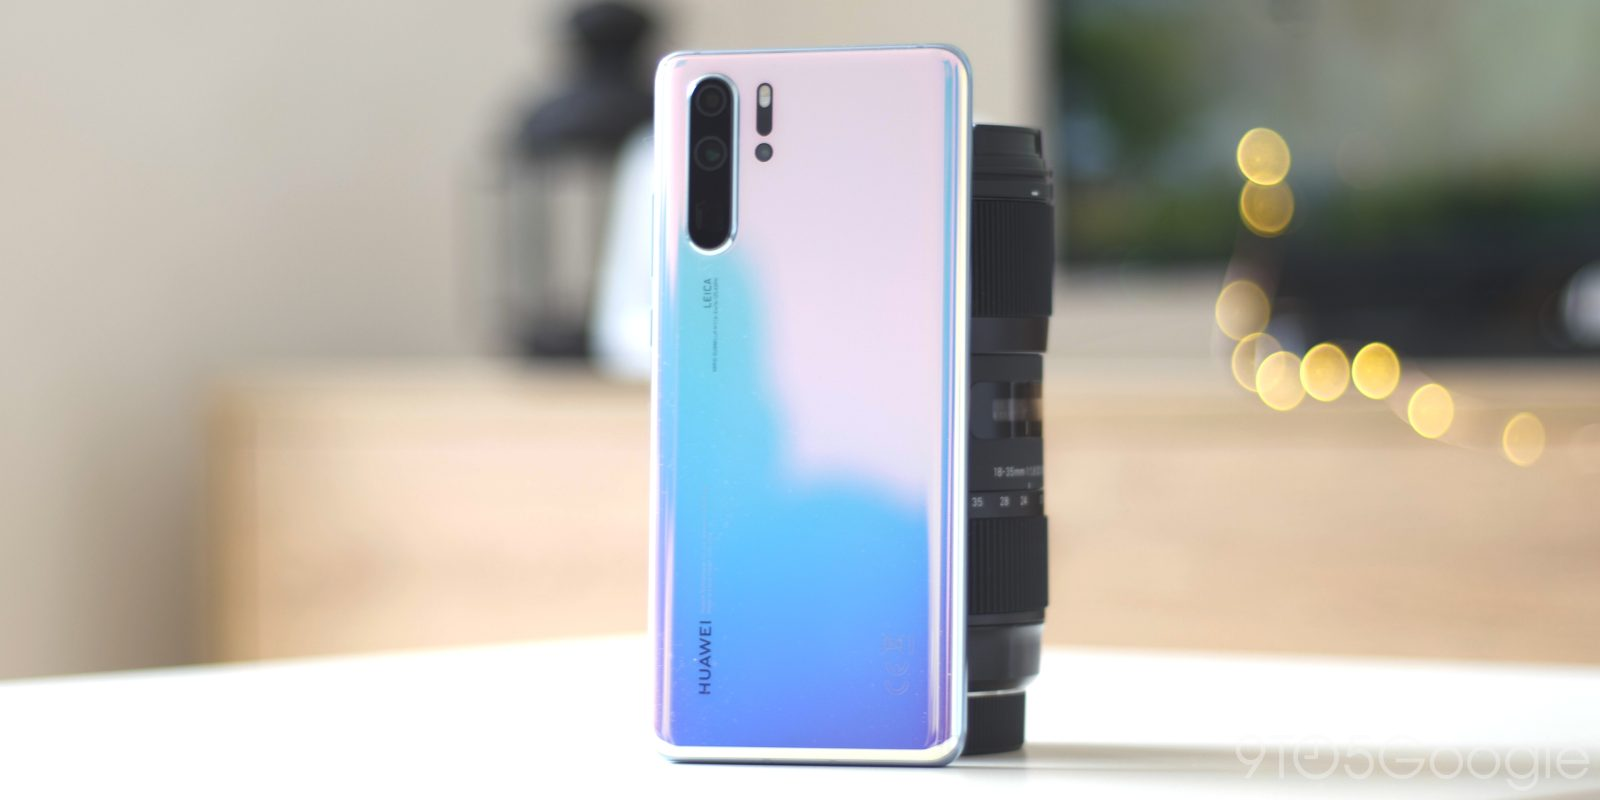 EMUI 9 1 0 53 update brings dual-view video to P30 Pro - 9to5Google